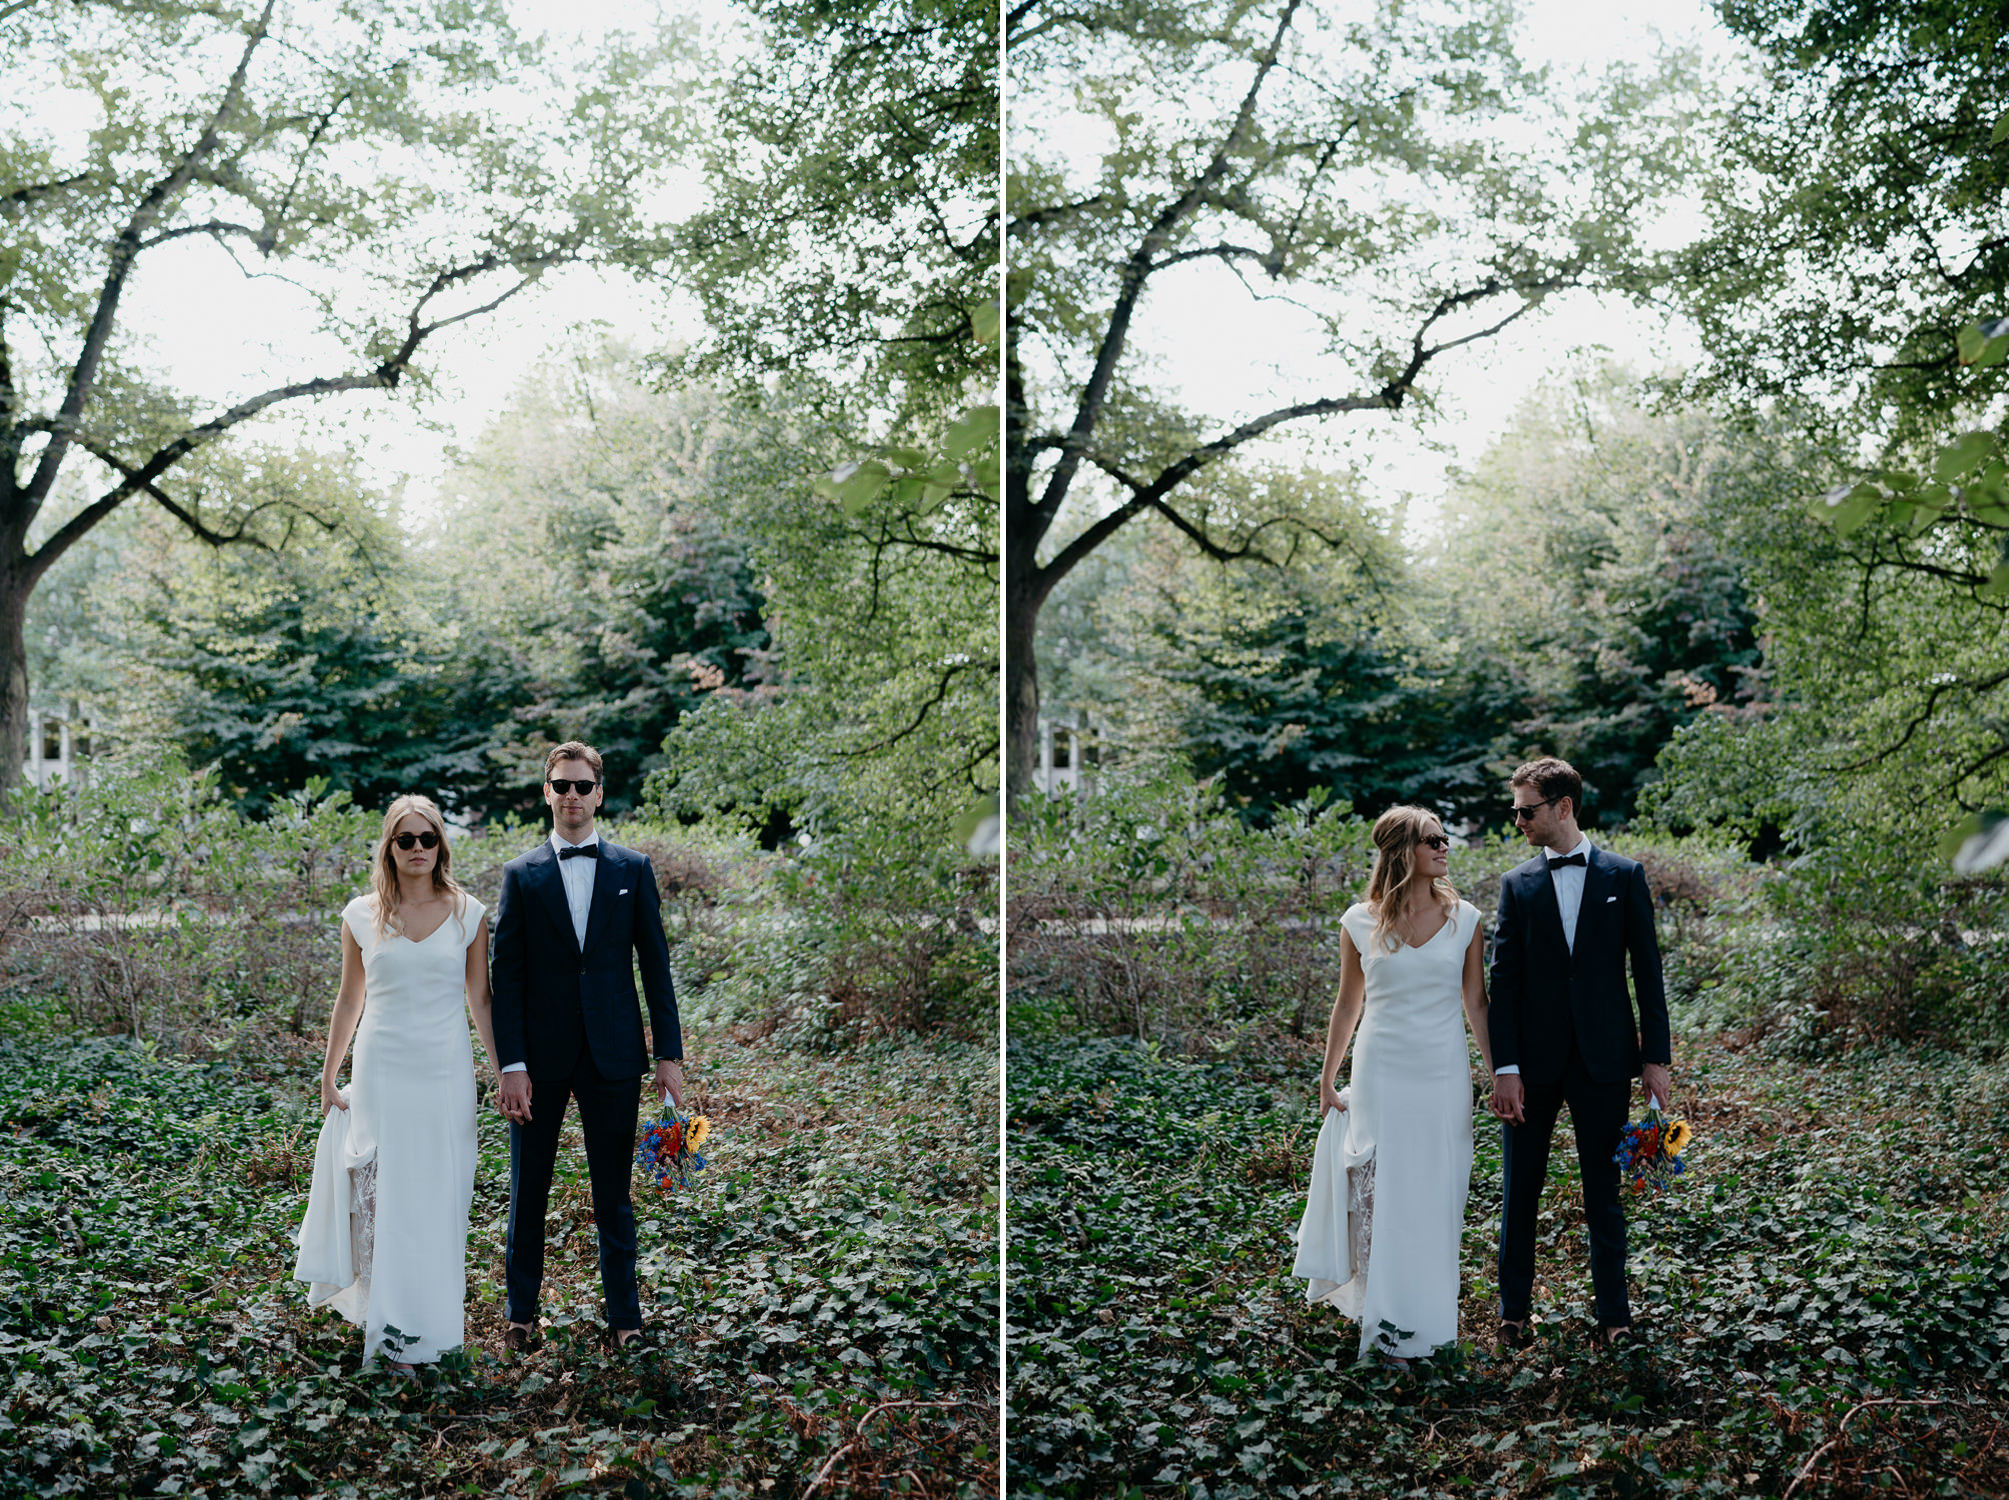 funny creative wedding photo's by mark hadden wedding photography based in amsterdam the netherlands